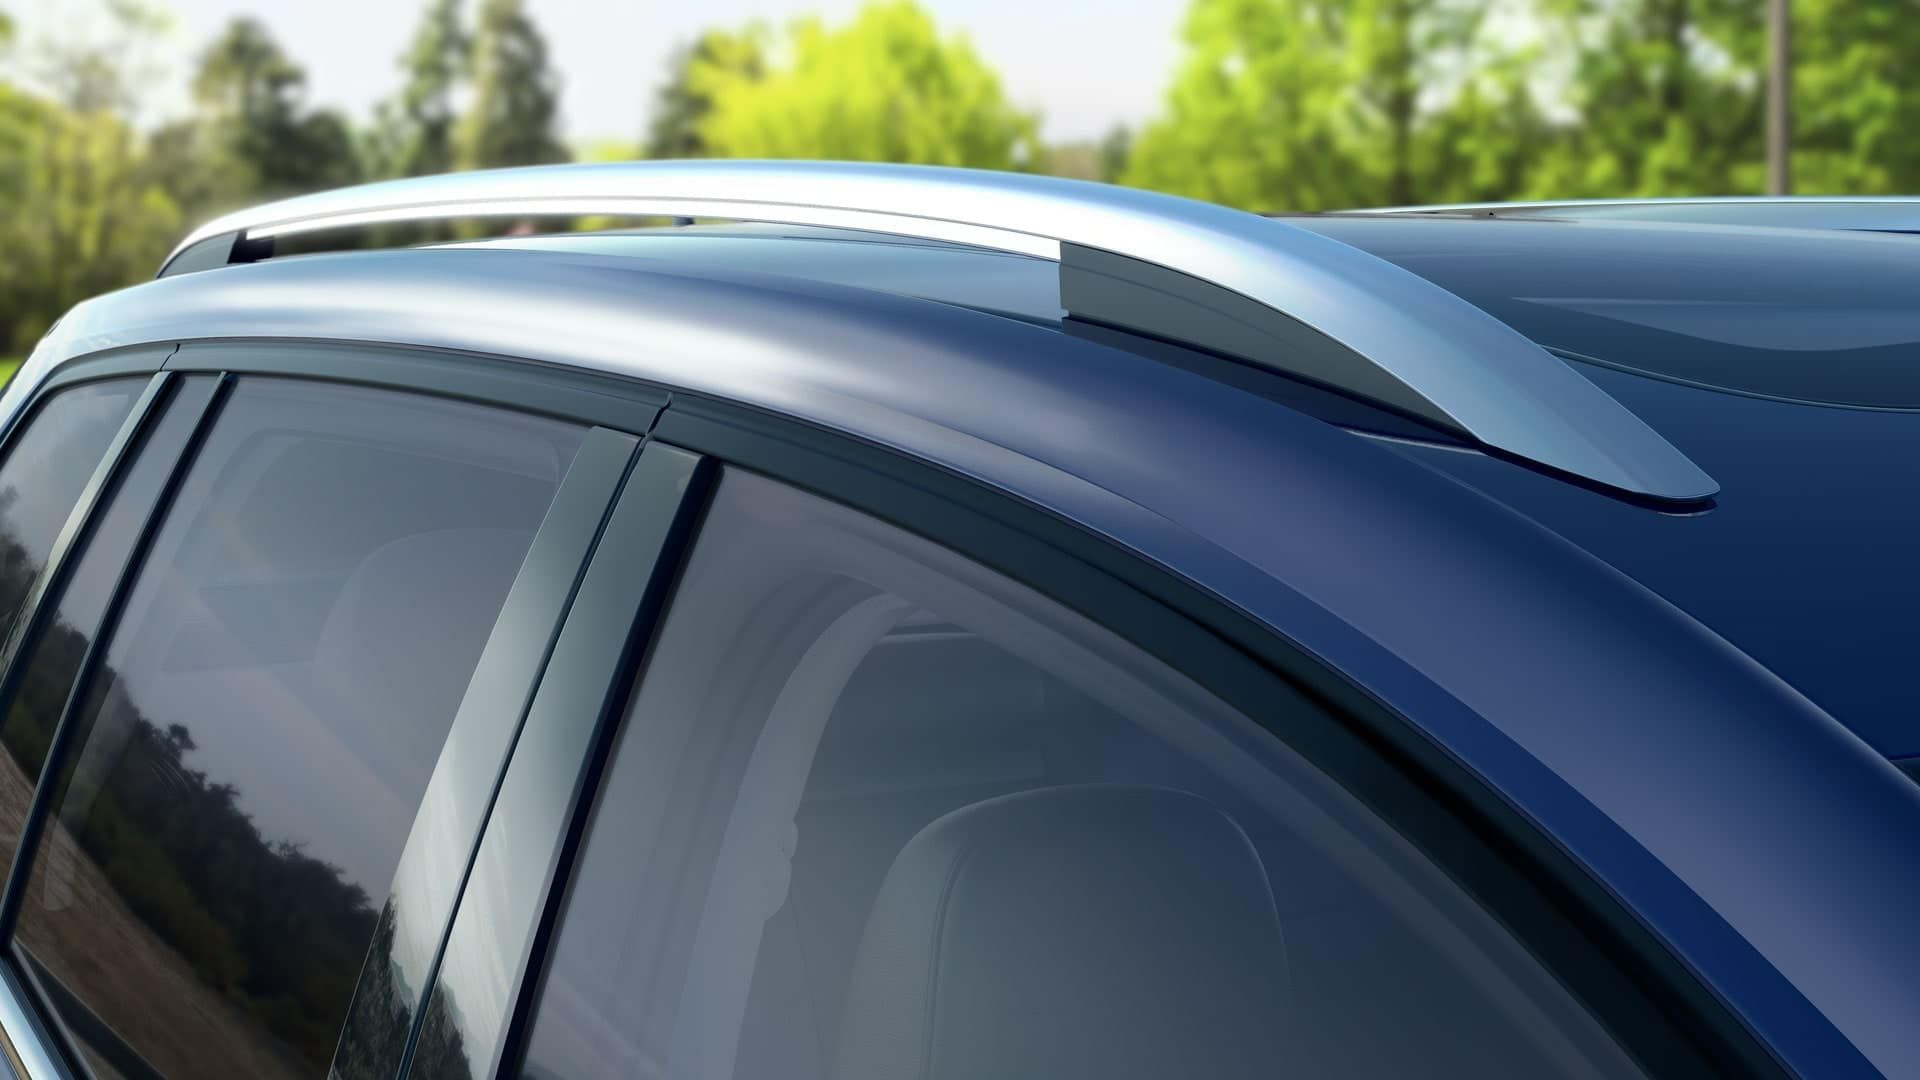 VW SportWagen Roof Rails